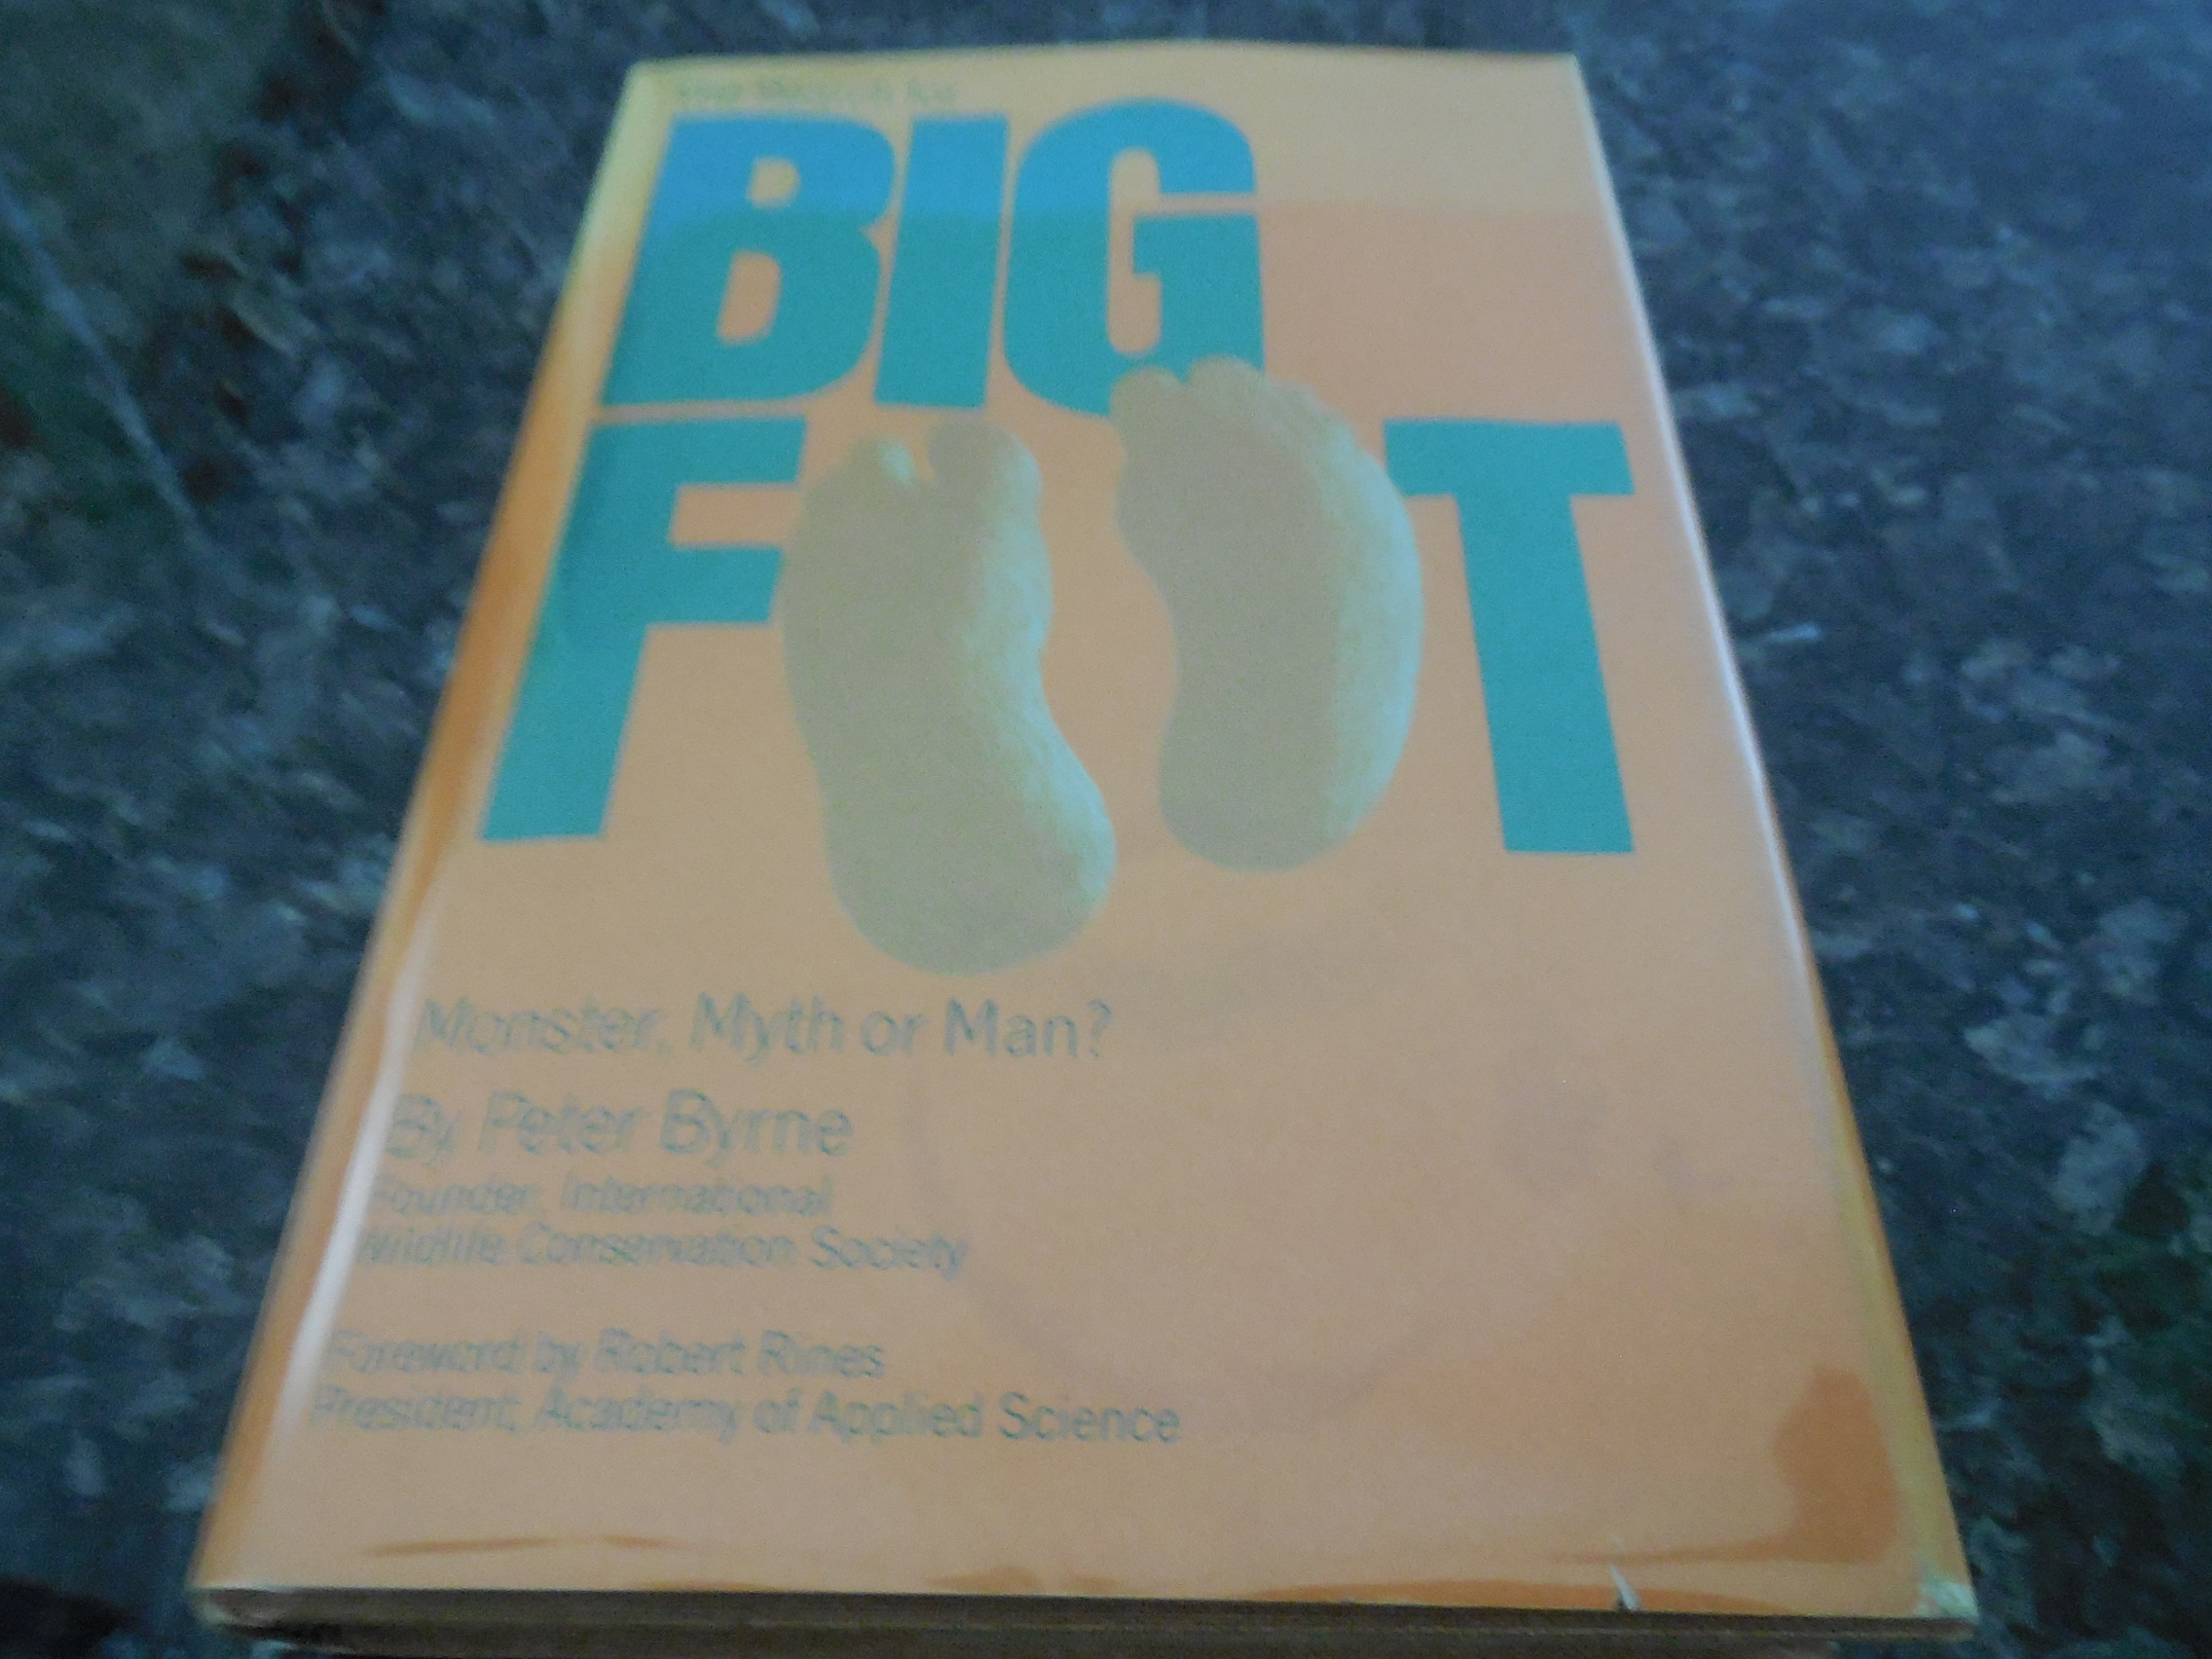 Image for The Search for Big Foot: Monster, Myth or Man?